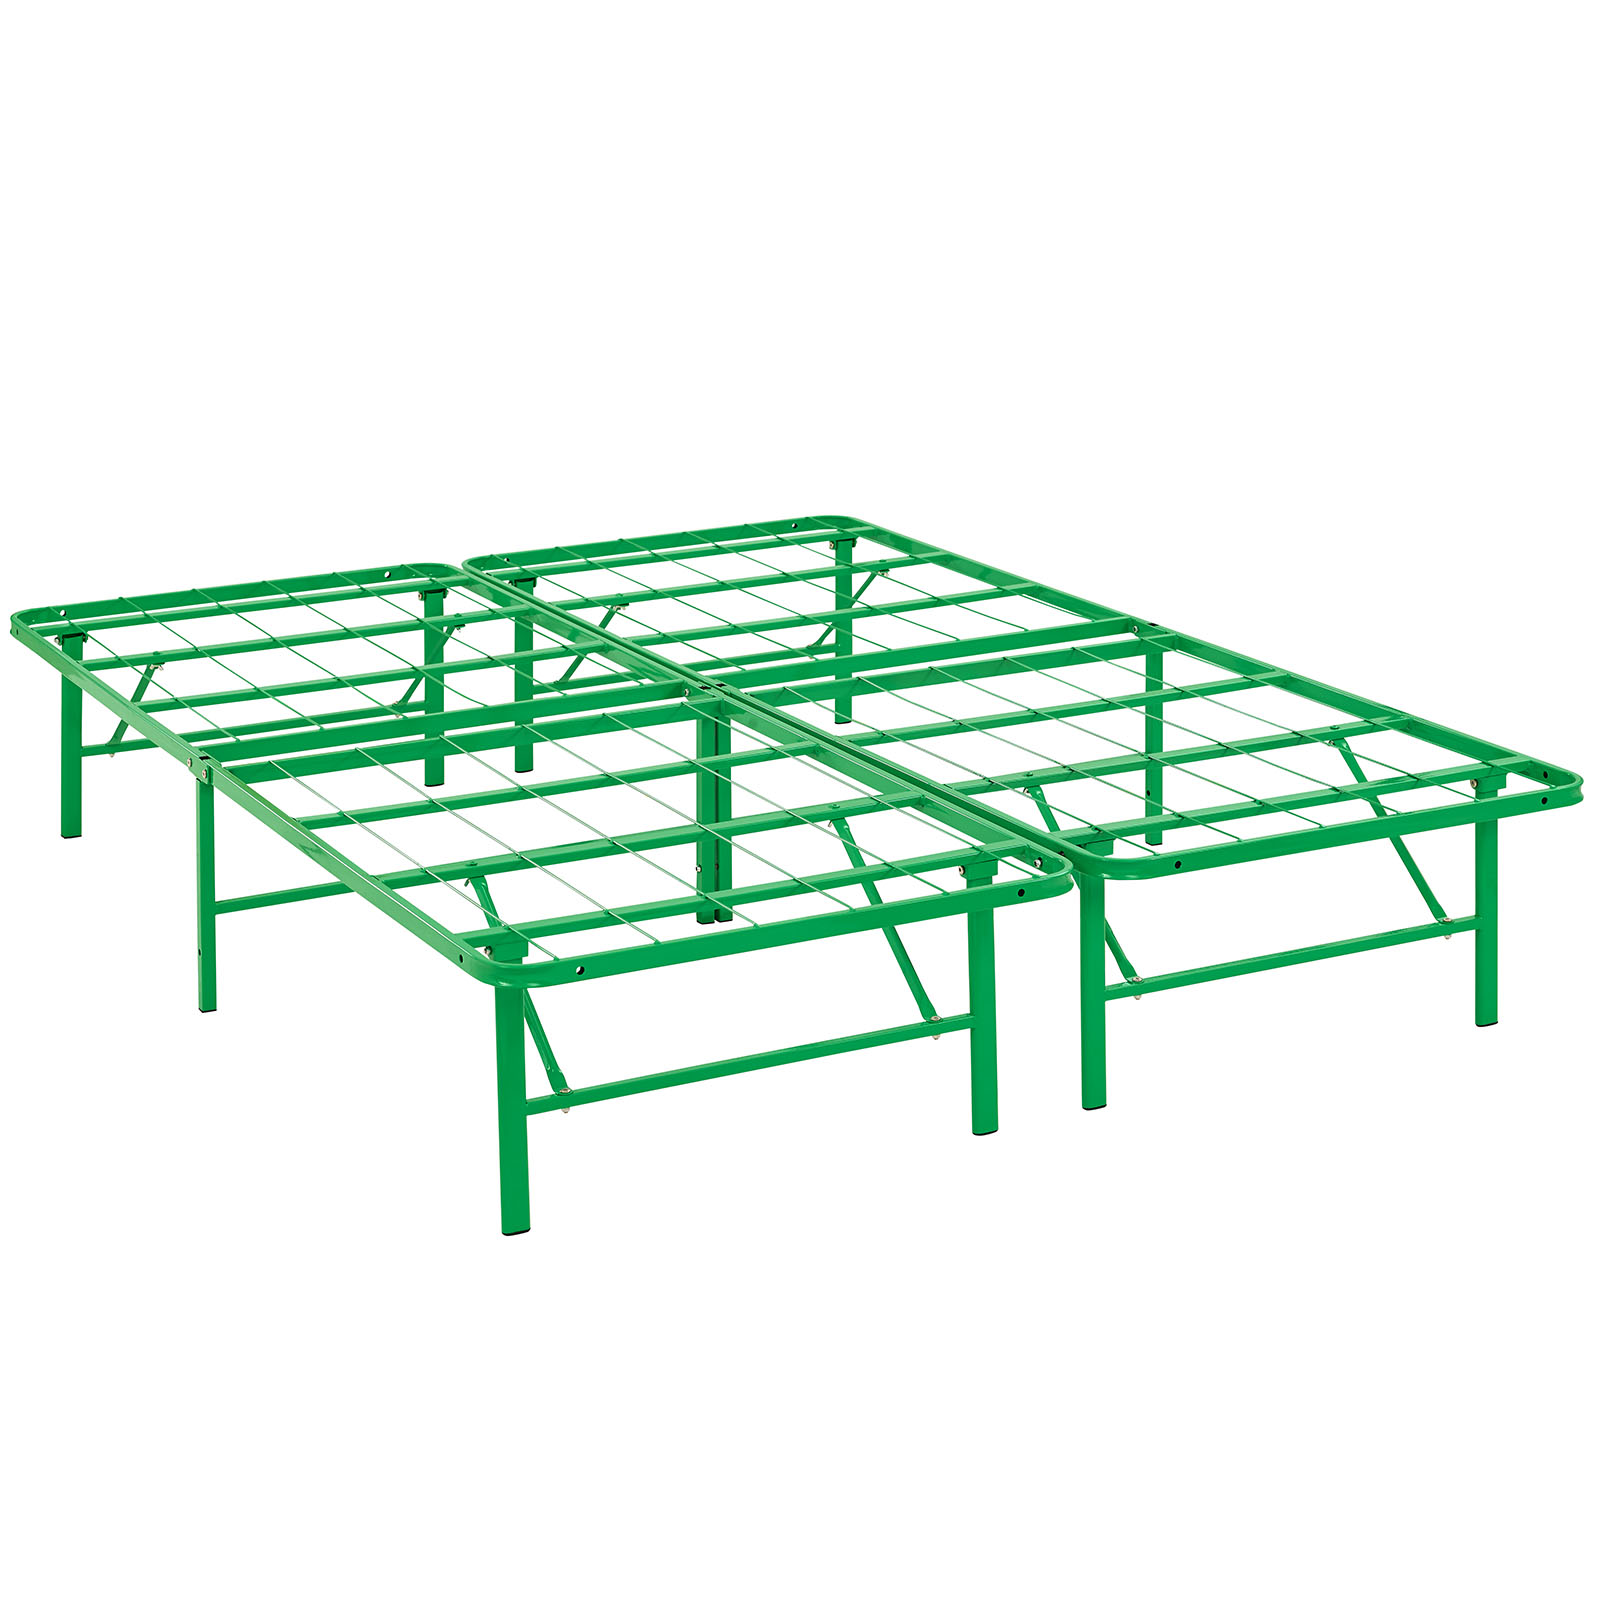 Modern Contemporary Urban Design Bedroom Full Size Platform Bed Frame, Green, Metal Steel